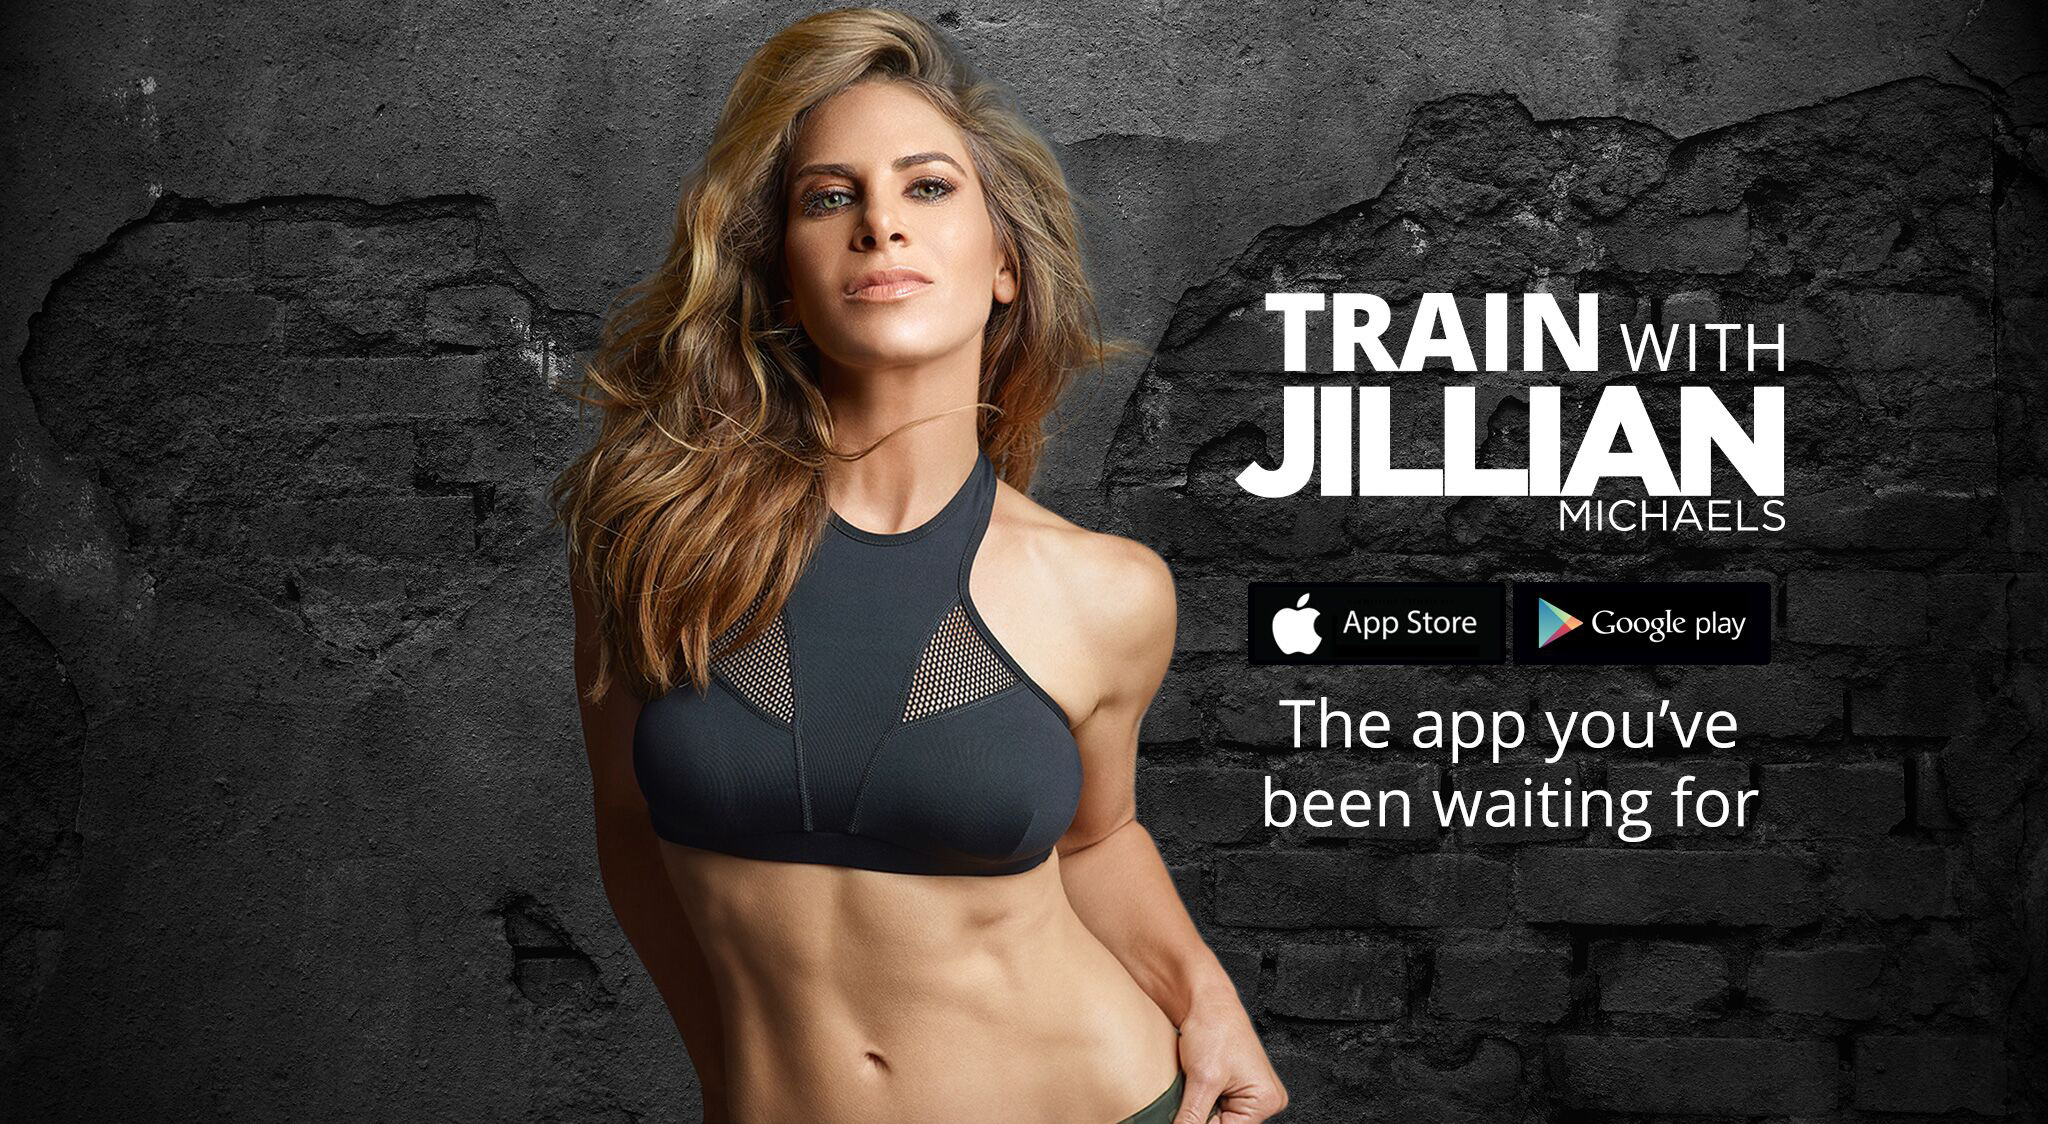 Jillian Michaels R/R